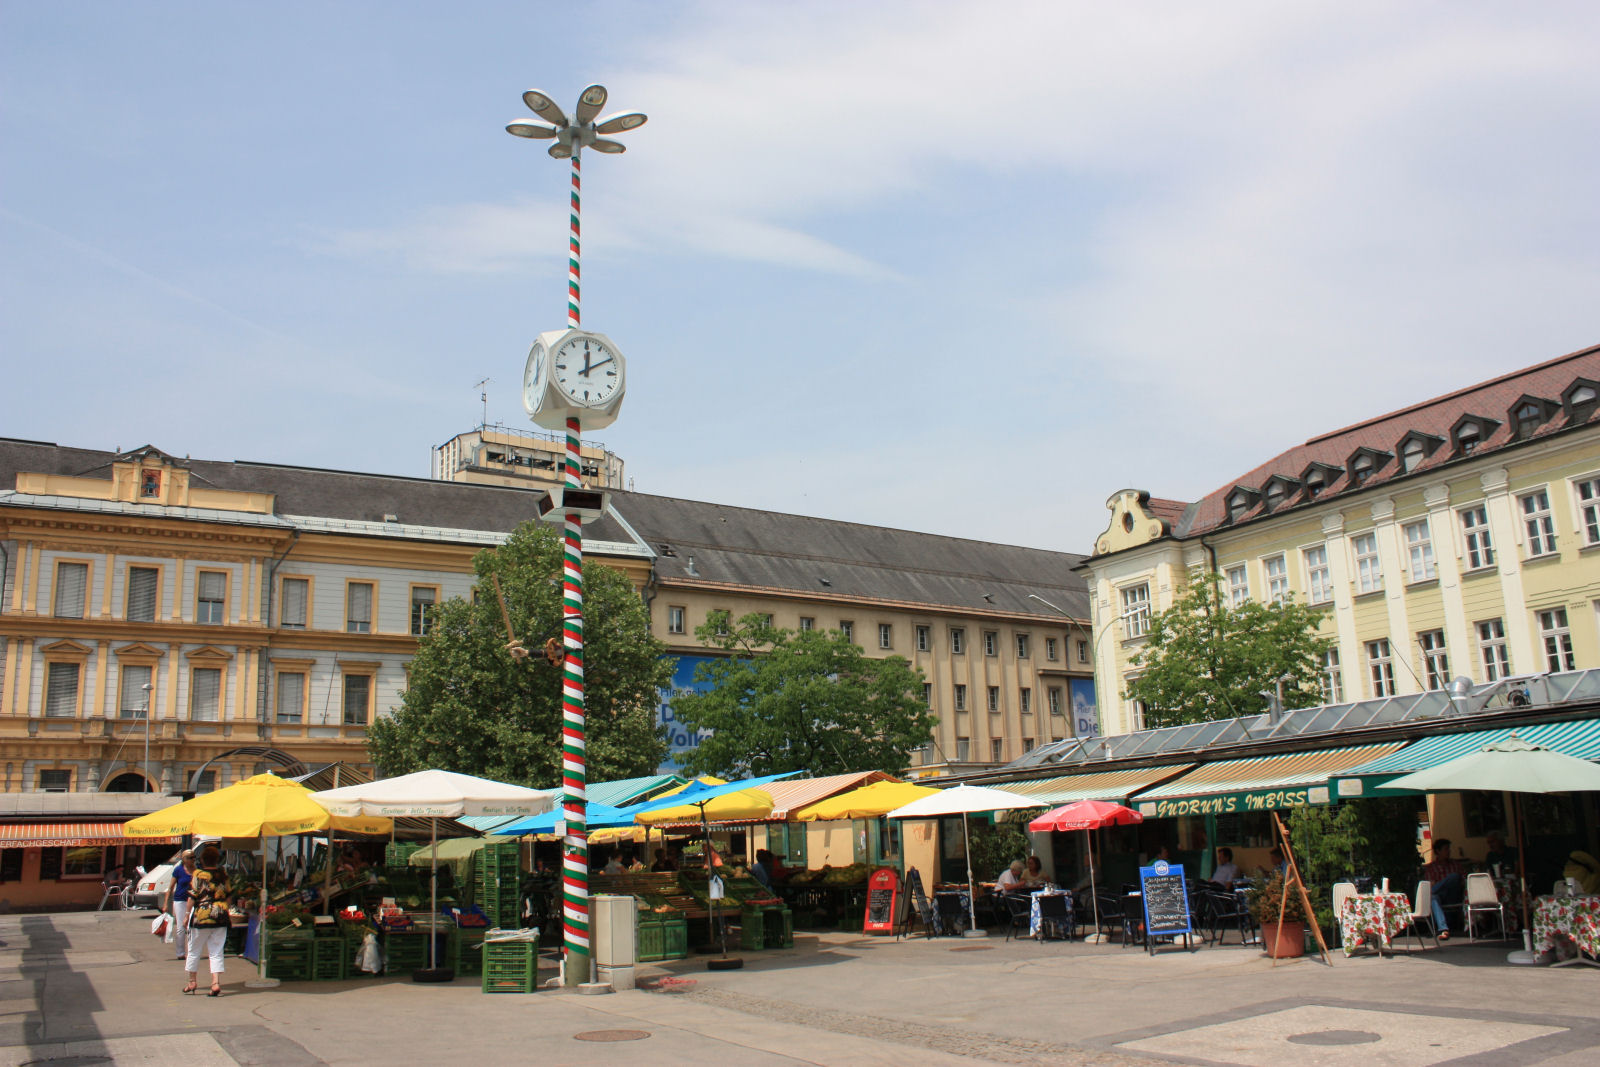 Klagenfurt's Benedictine Market in downtown Klagenfurt offers everything your heart desires.